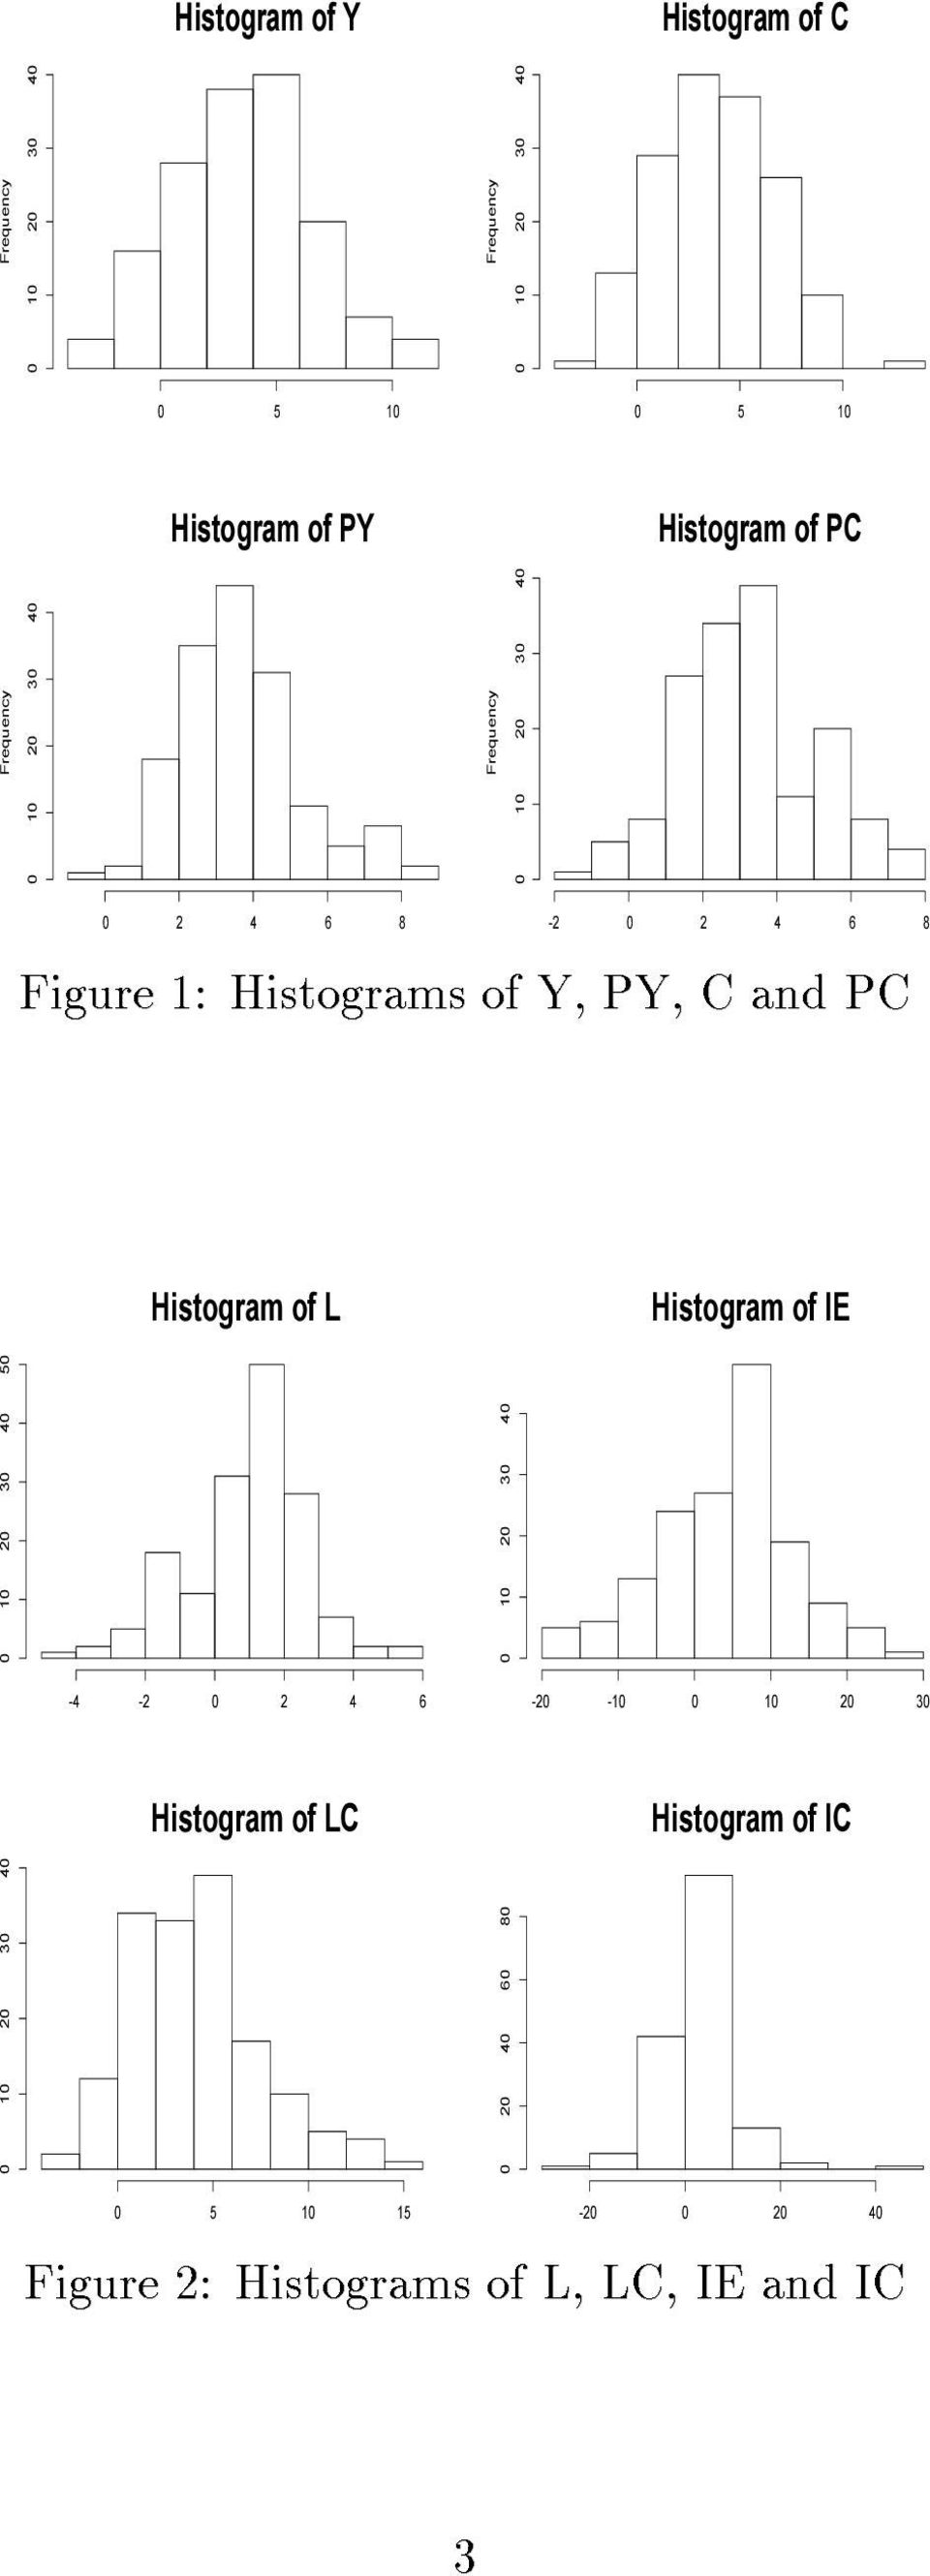 C and PC Histogram of L Histogram of IE 0 10 20 30 40 50-4 -2 0 2 4 6 Histogram of LC 0 10 20 30 40 0 10 20 30